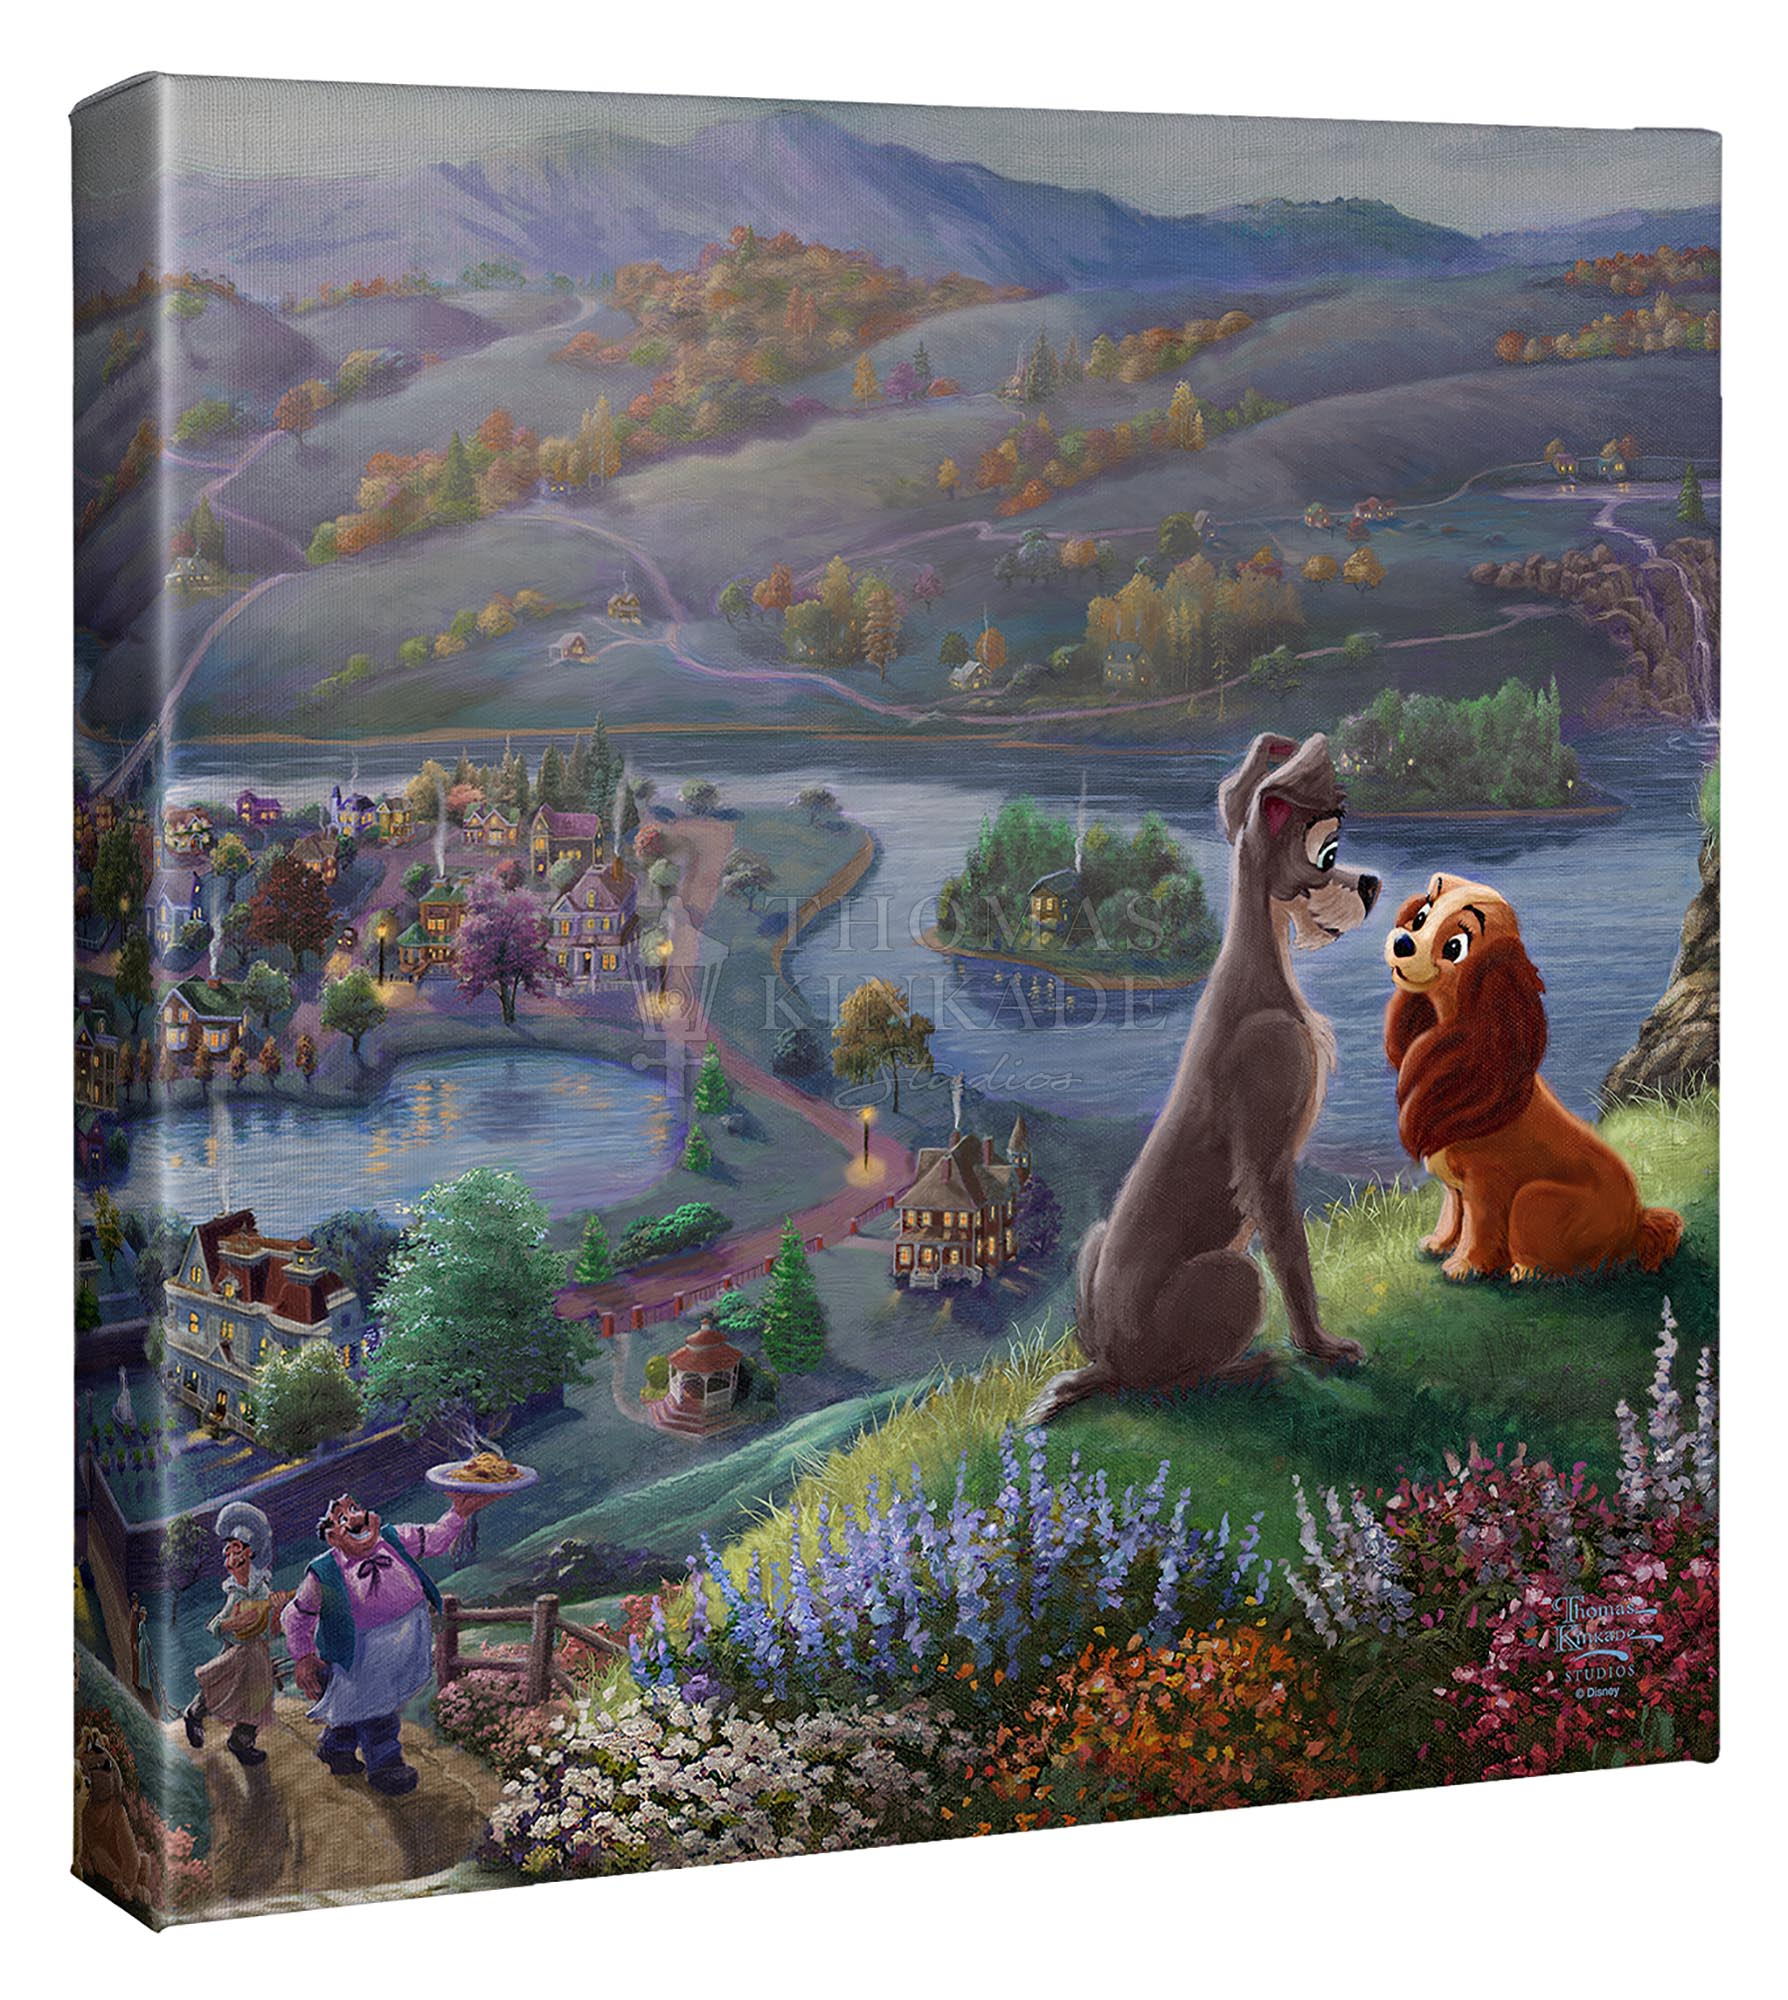 Lady And The Tramp Falling In Love 14 X 14 Gallery Wrapped Canvas Thomas Kinkade Studios